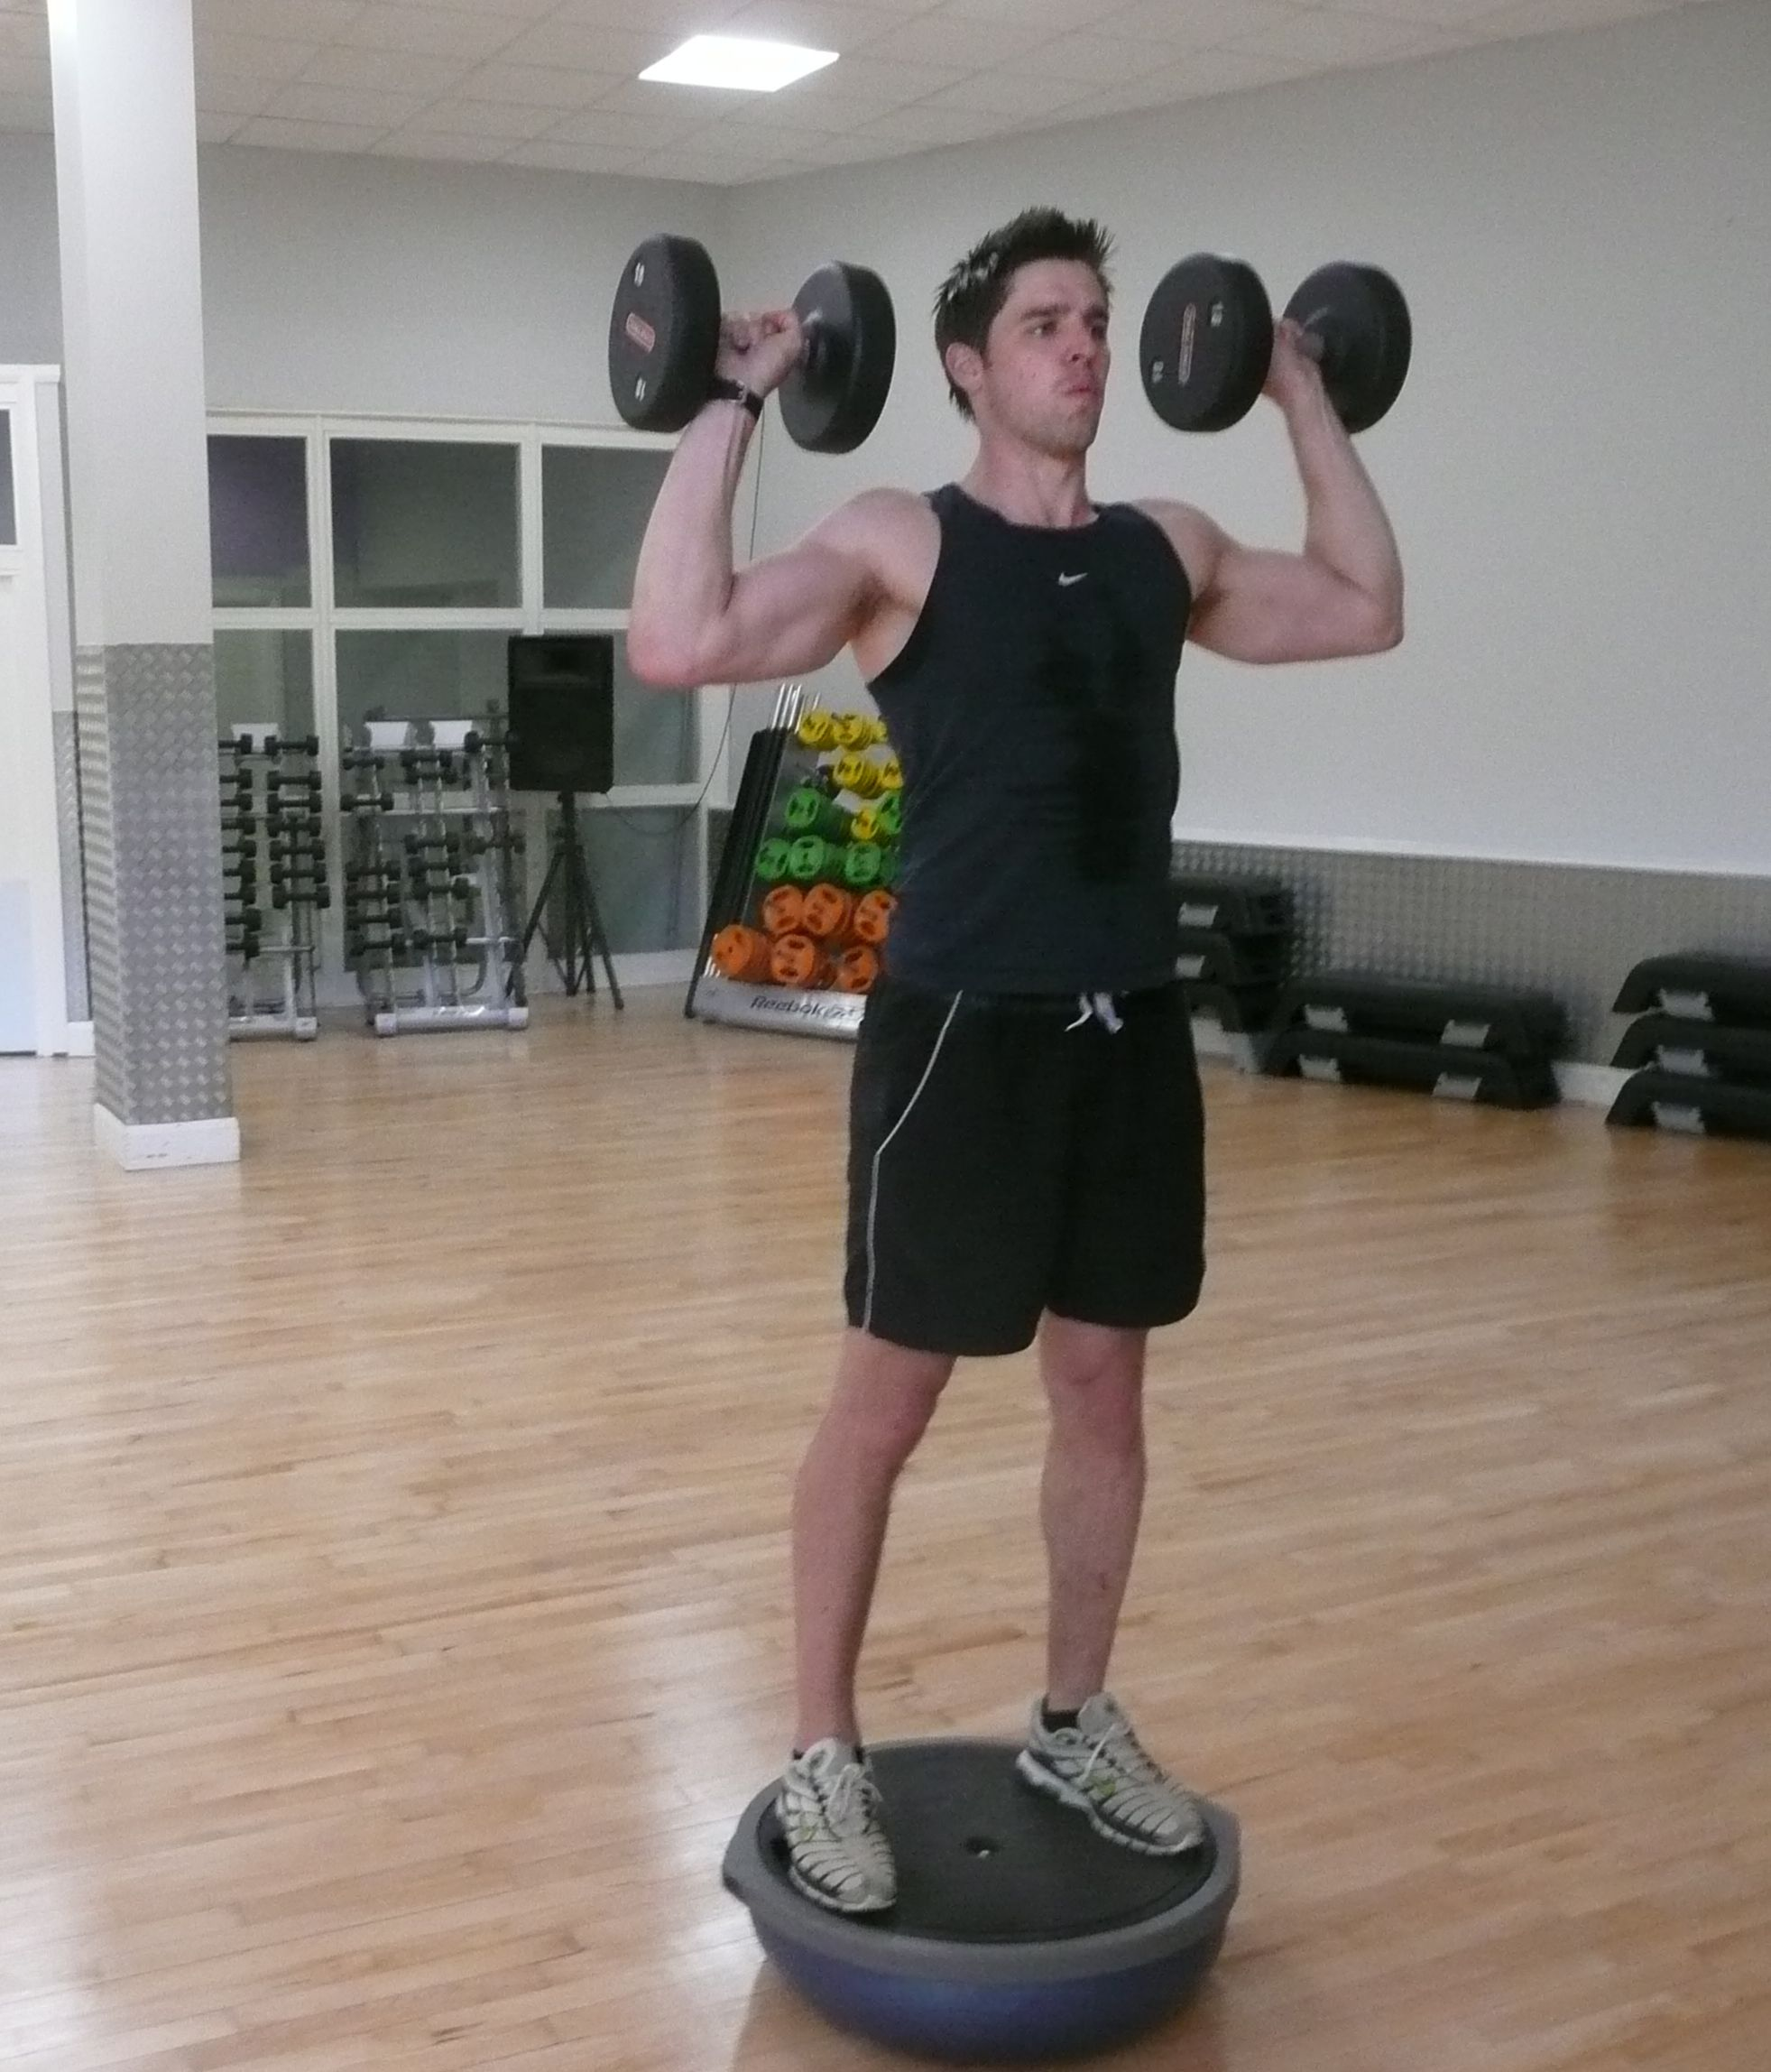 Shoulder Press On Bosu Is Not Safe This Way There S Even A Warning On The Bottom Of The Bosu To Not Use It Upside Down Shoulder Press Style Fashion